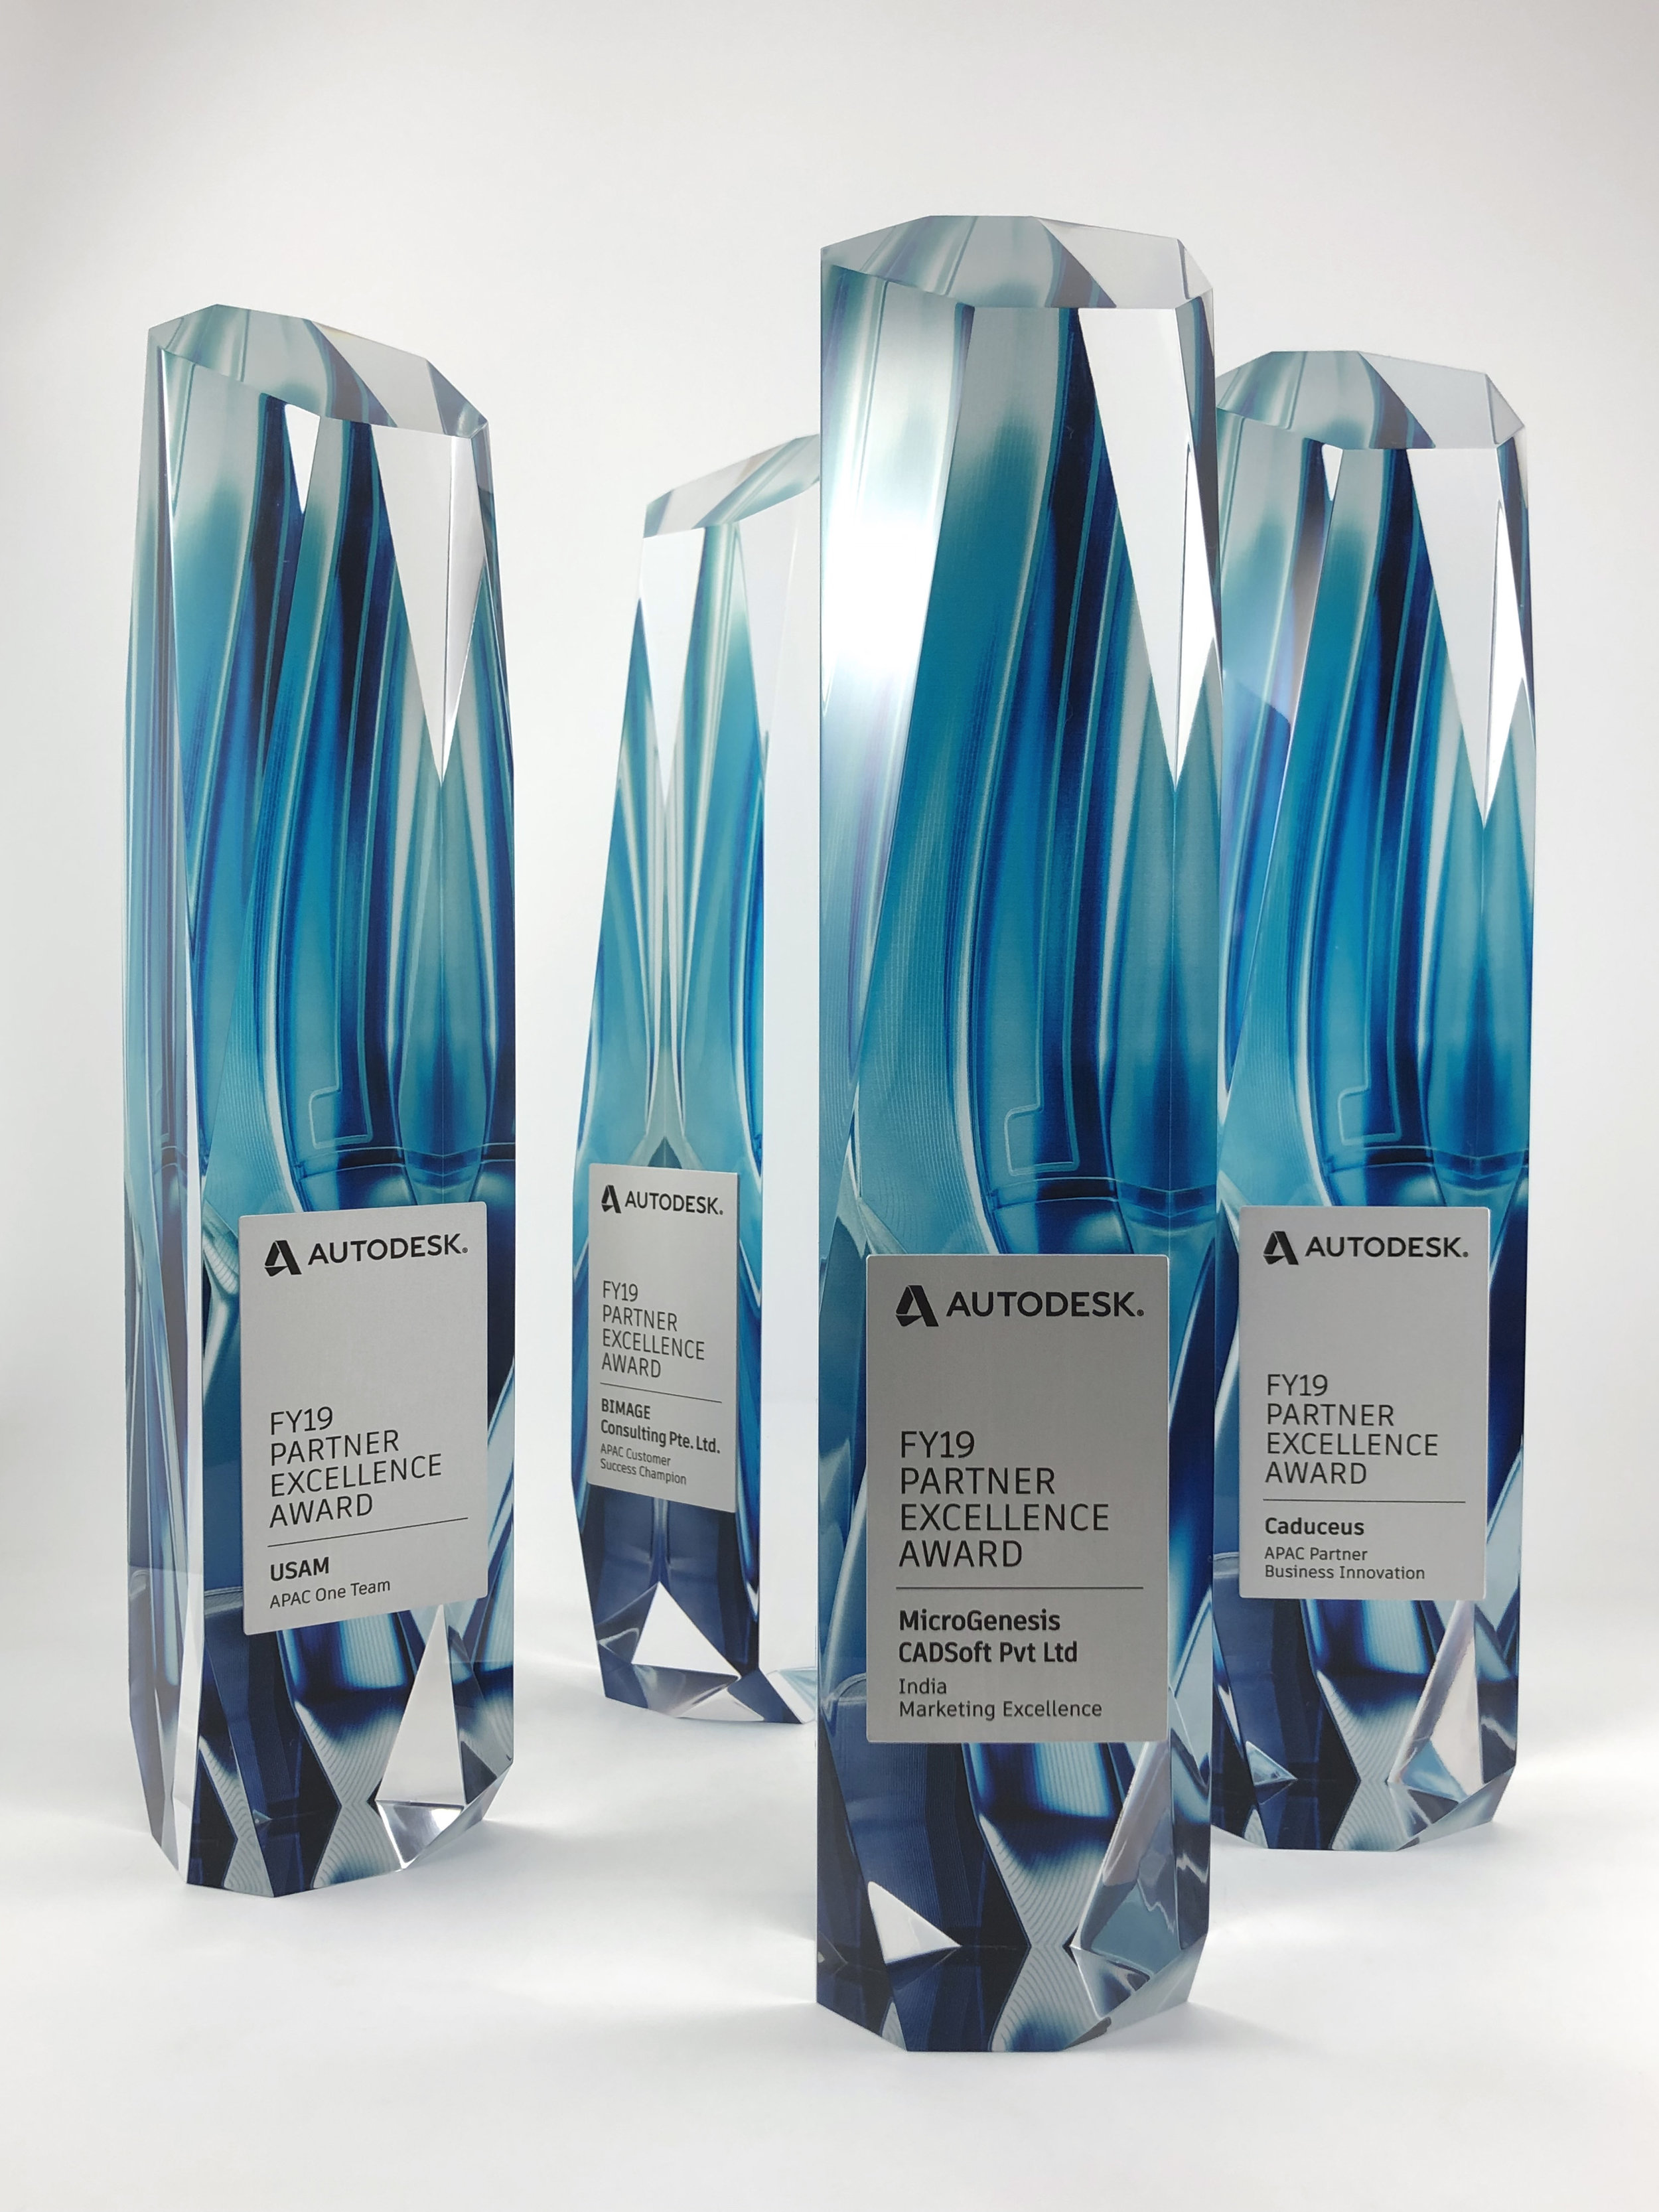 autodesck-apac-partner-excellence-awards-acrylic-graphic-art-trophy-04.jpg